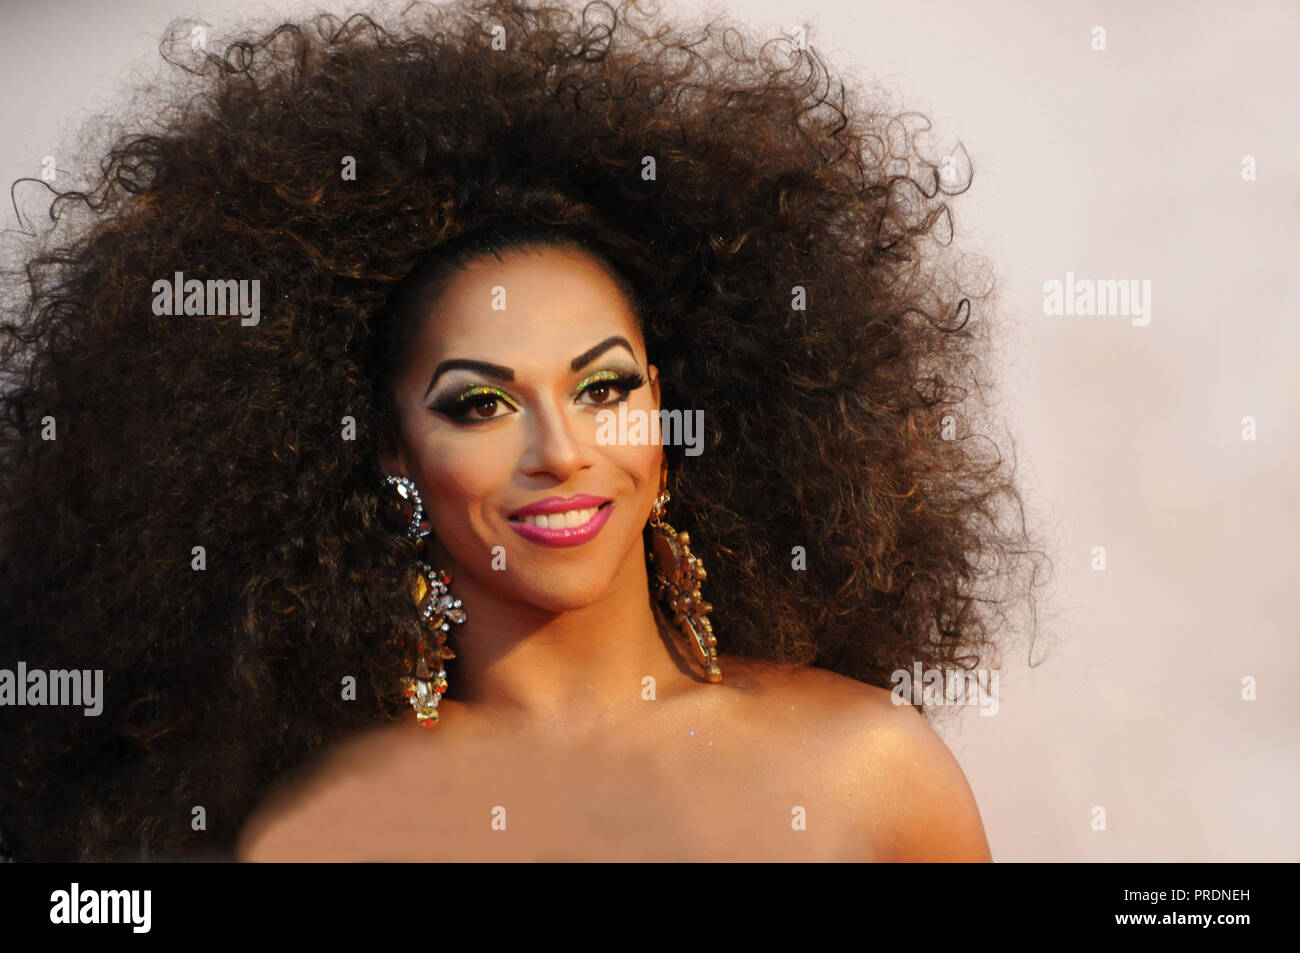 American Gay Drag Queen Shangela On The Red Carpet Of The London